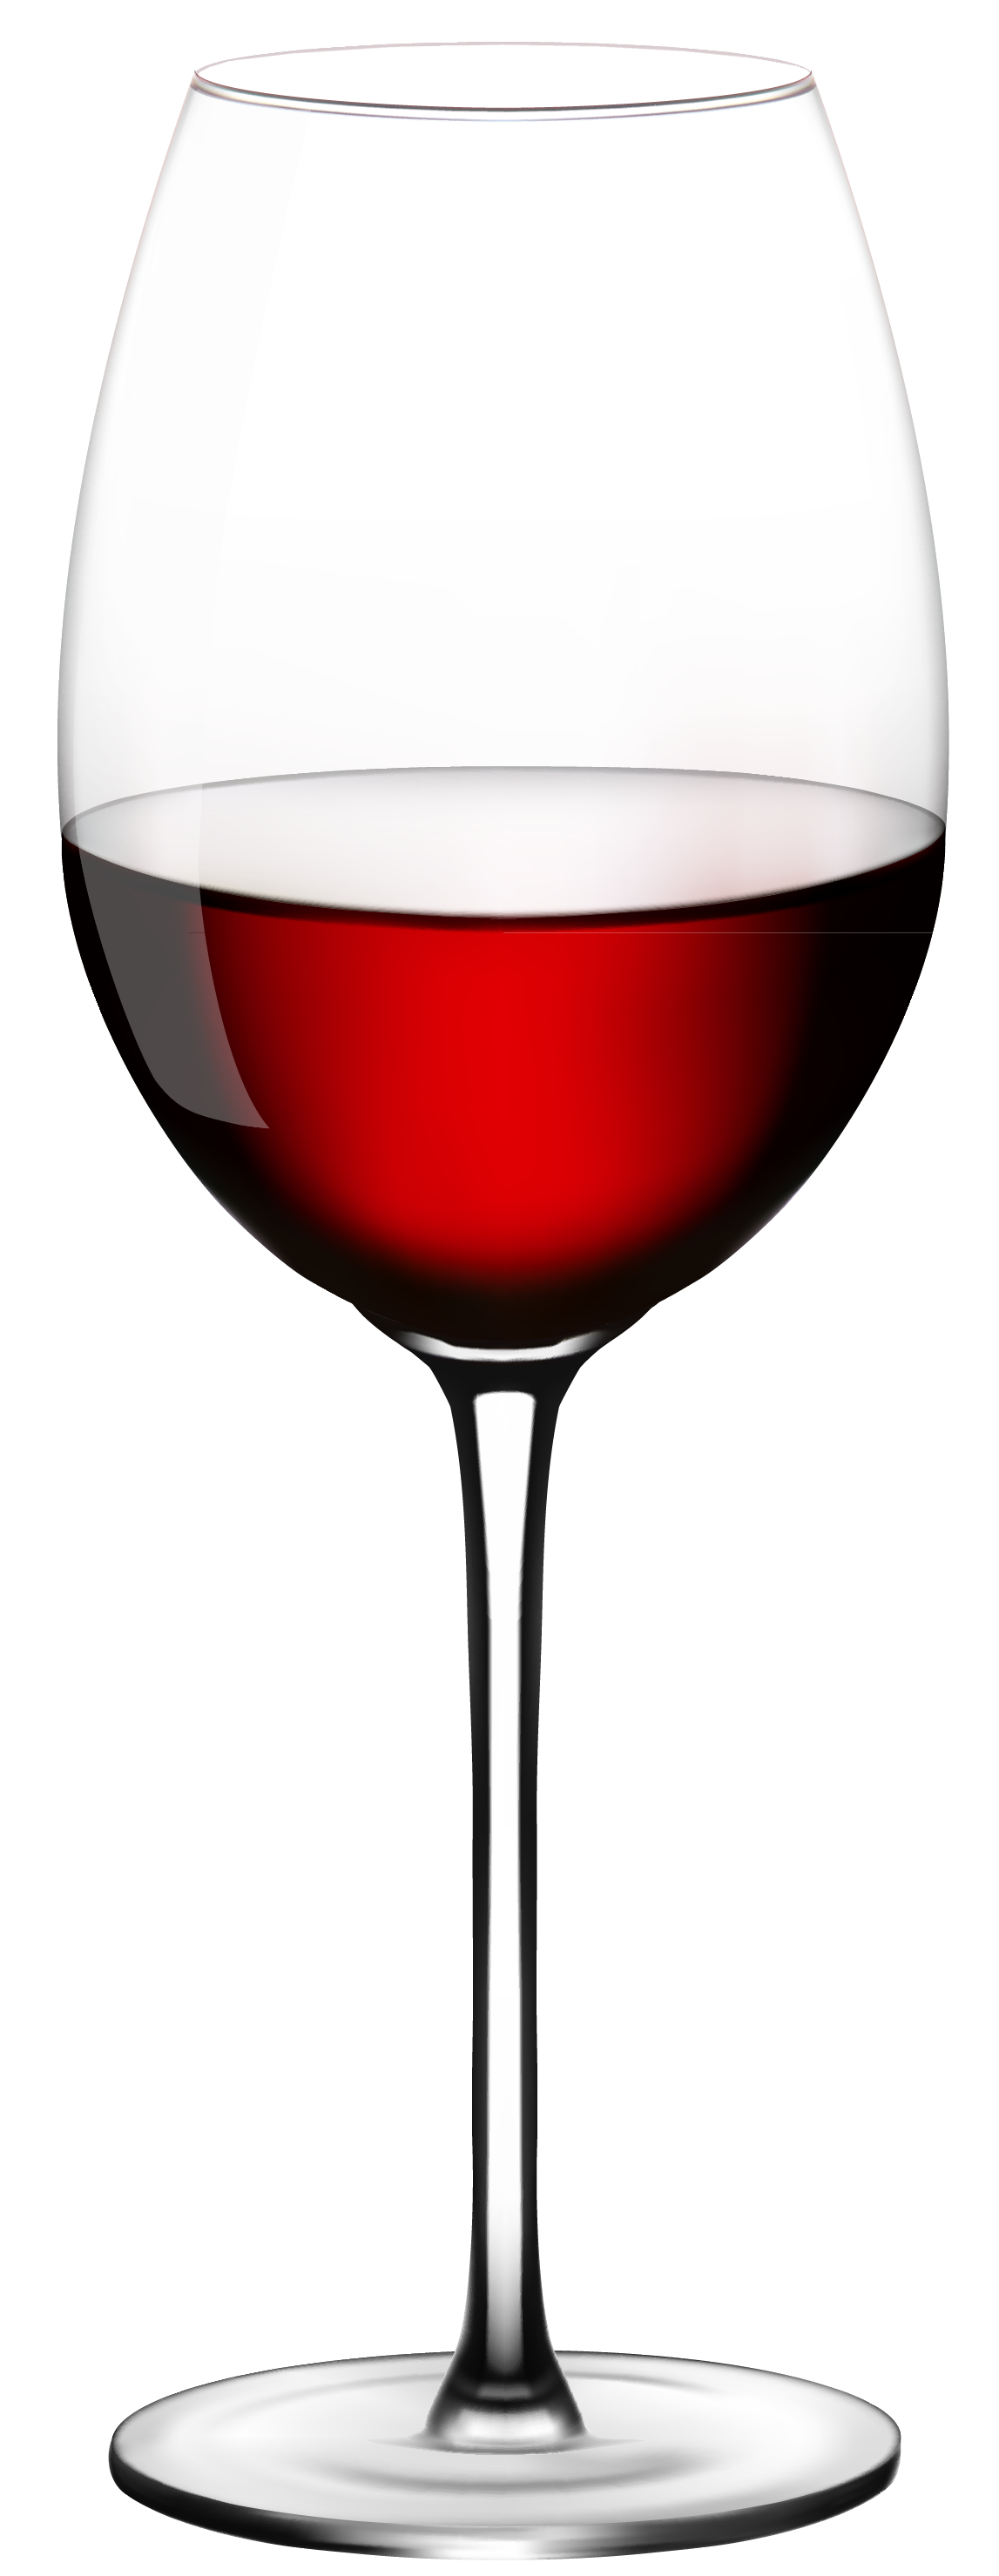 Glass PNG - 4578